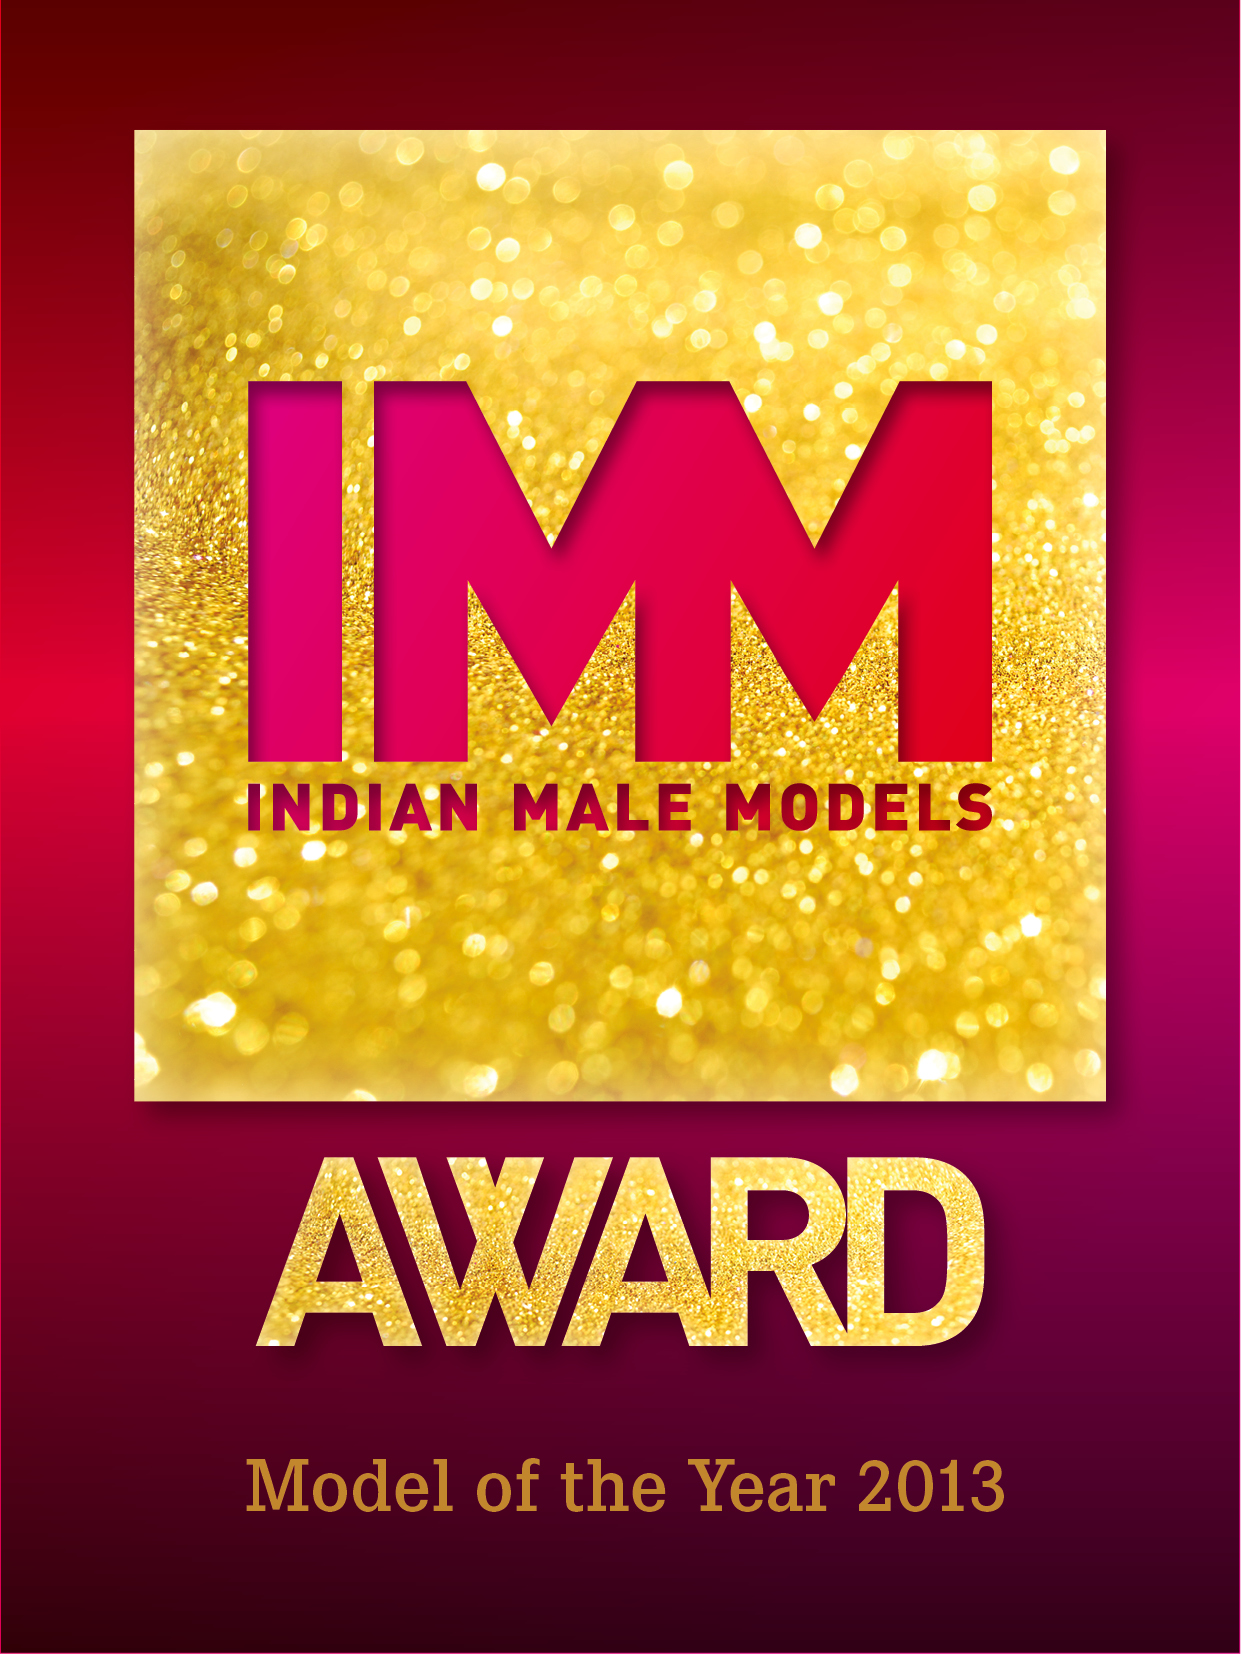 ... of December we starting the IMM – Award >>> Model of the Year 2013